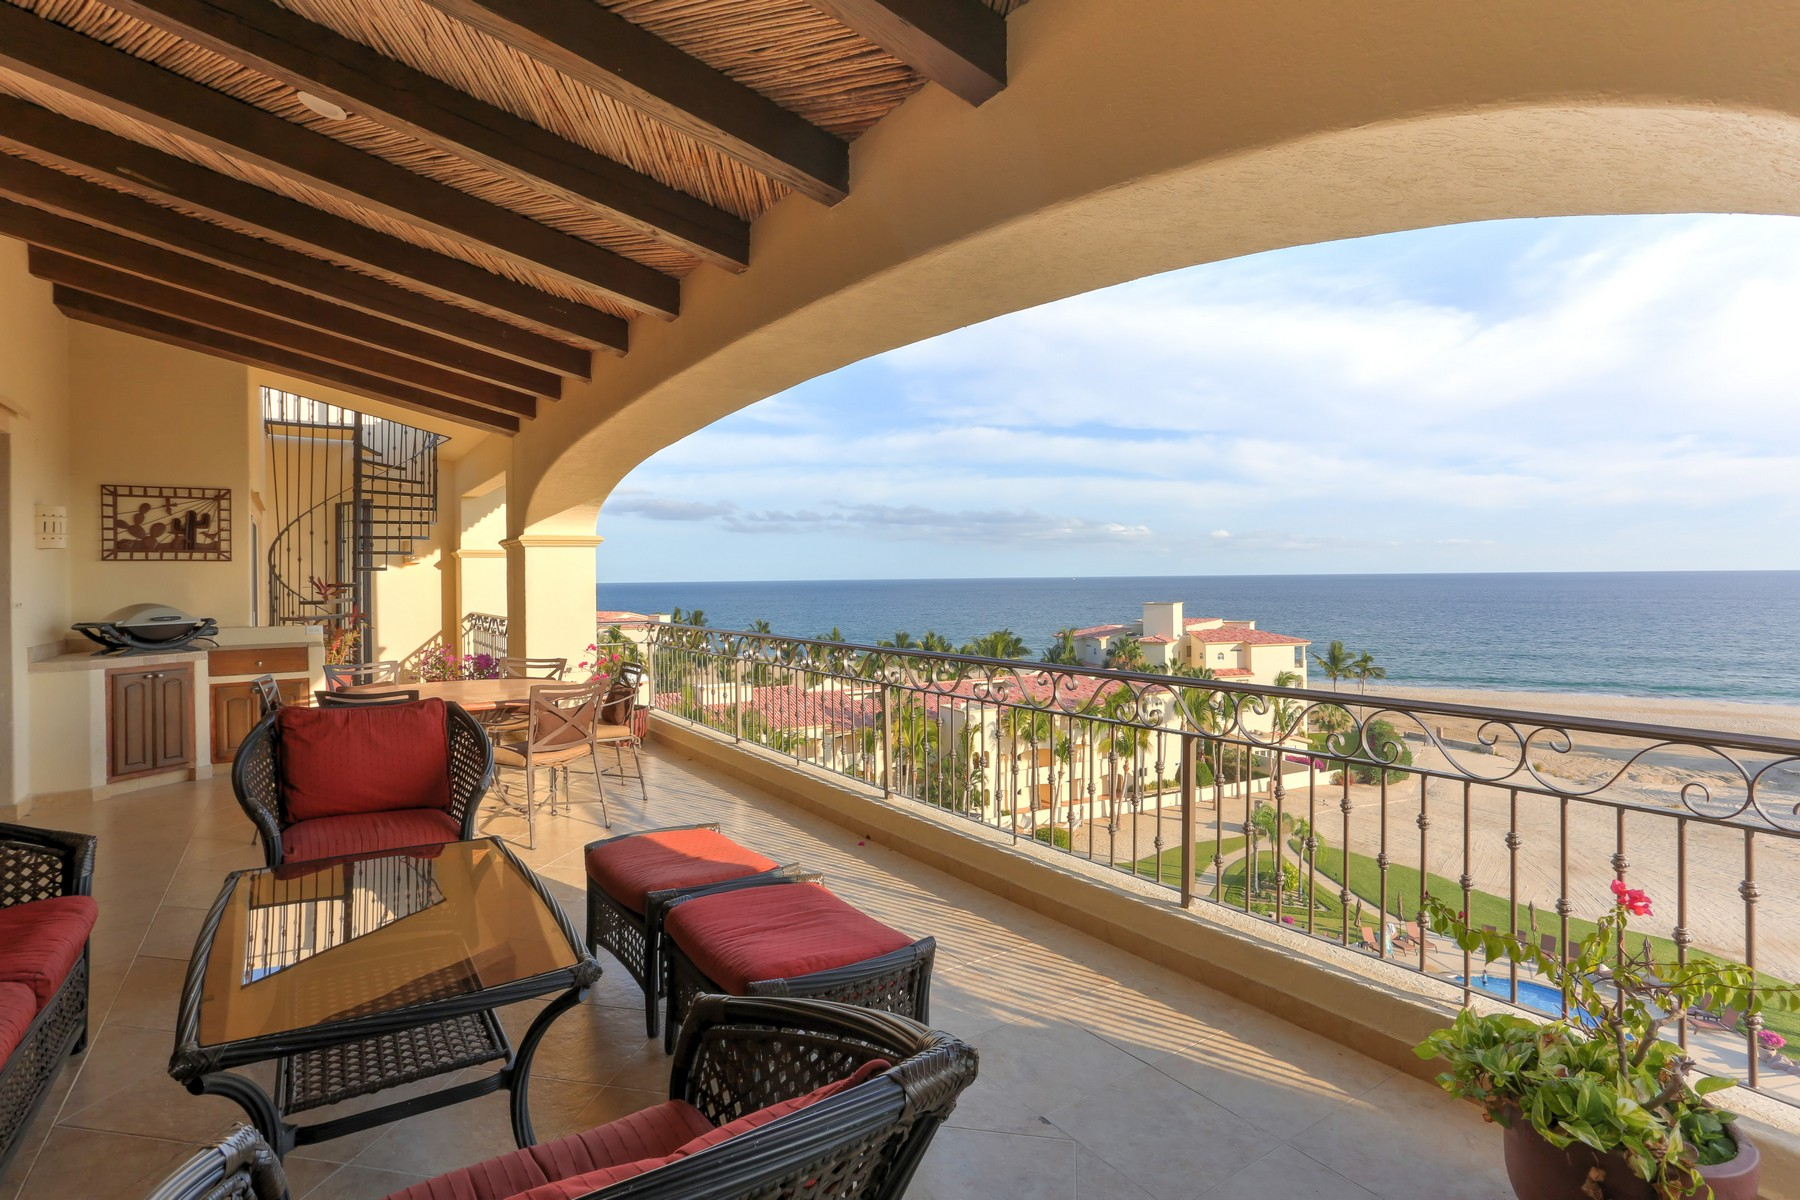 Apartment for Sale at Penthouse 3602 Blvd Paseo San José Zona Hotelera Penthouse 3602 San Jose Del Cabo, Baja California Sur 23400 Mexico